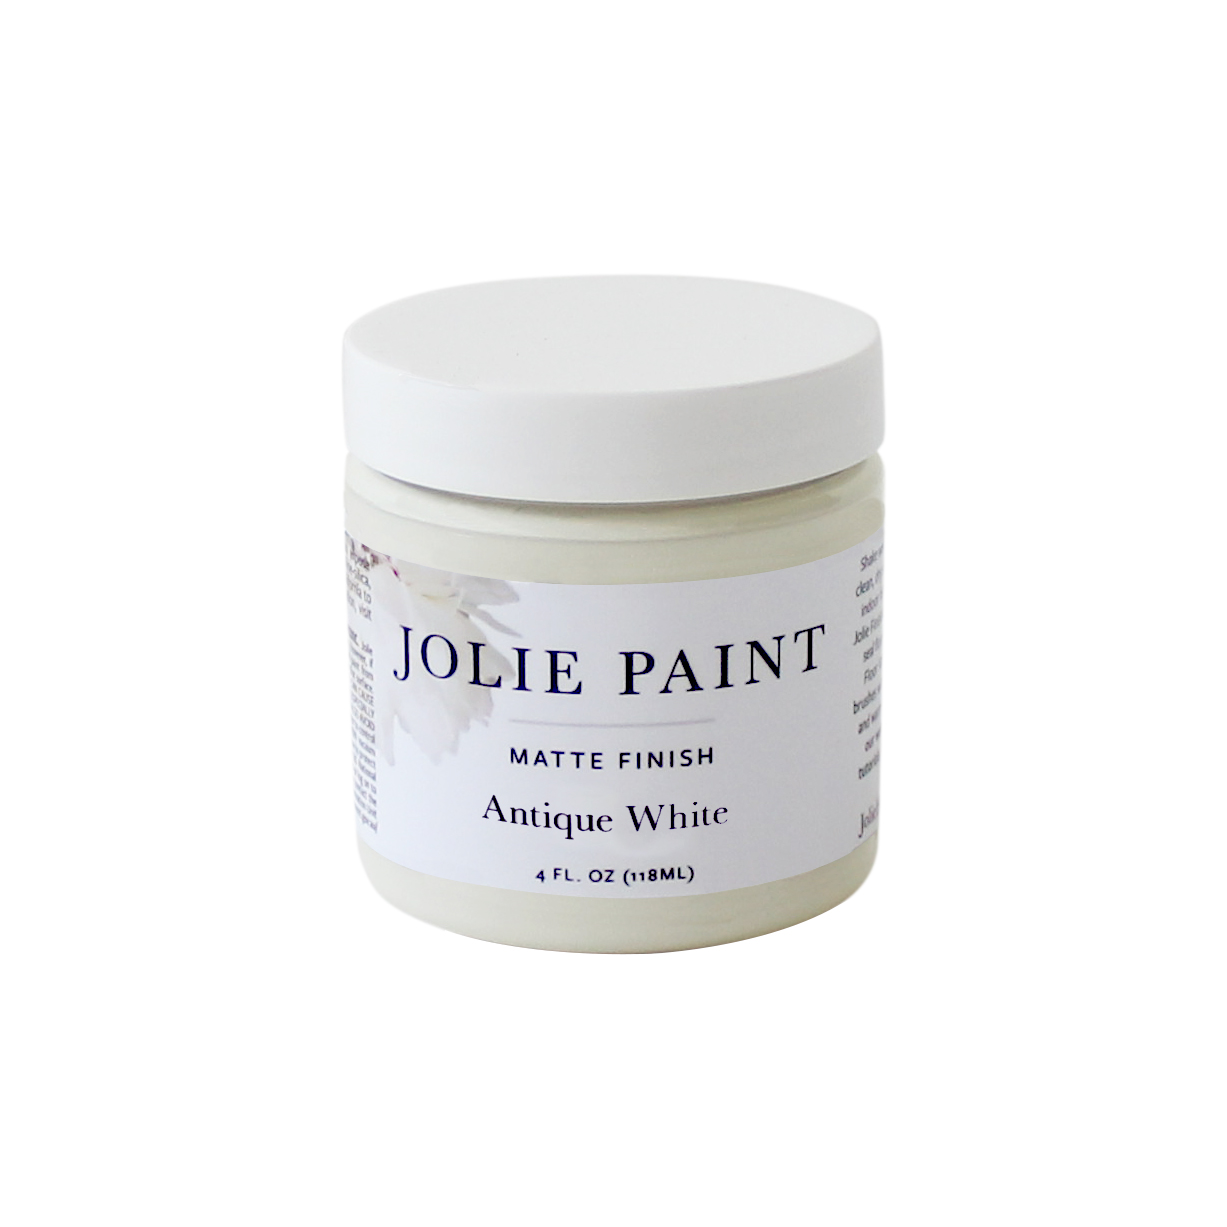 Antique White - Jolie Paint (s)